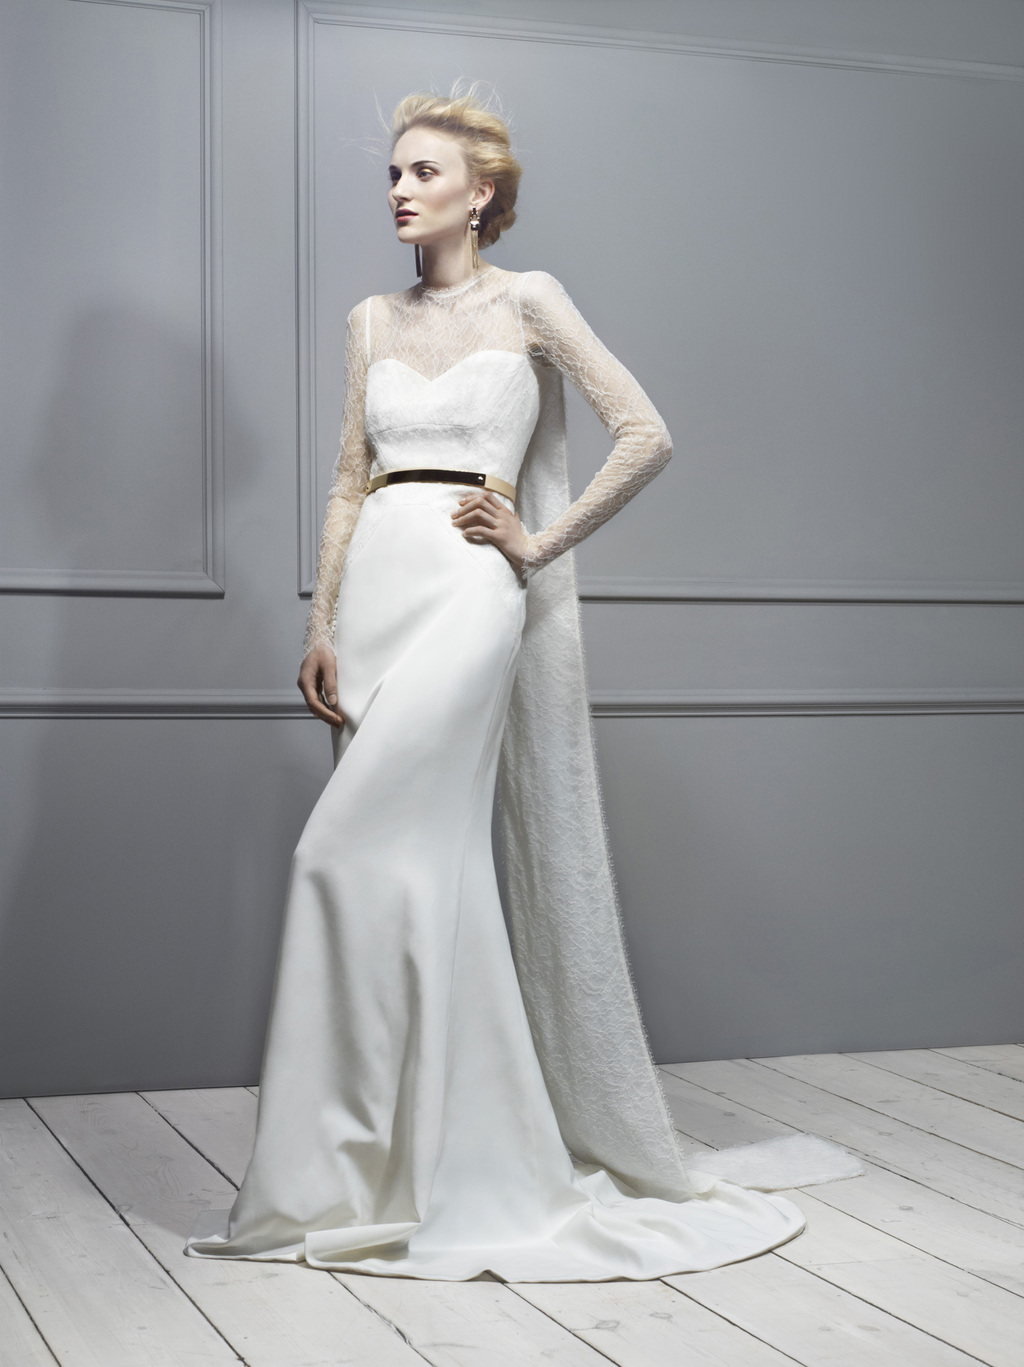 Antonio-berardi-wedding-dress-2013-exclusive-bridal-designer-collection-from-net-a-porter.full